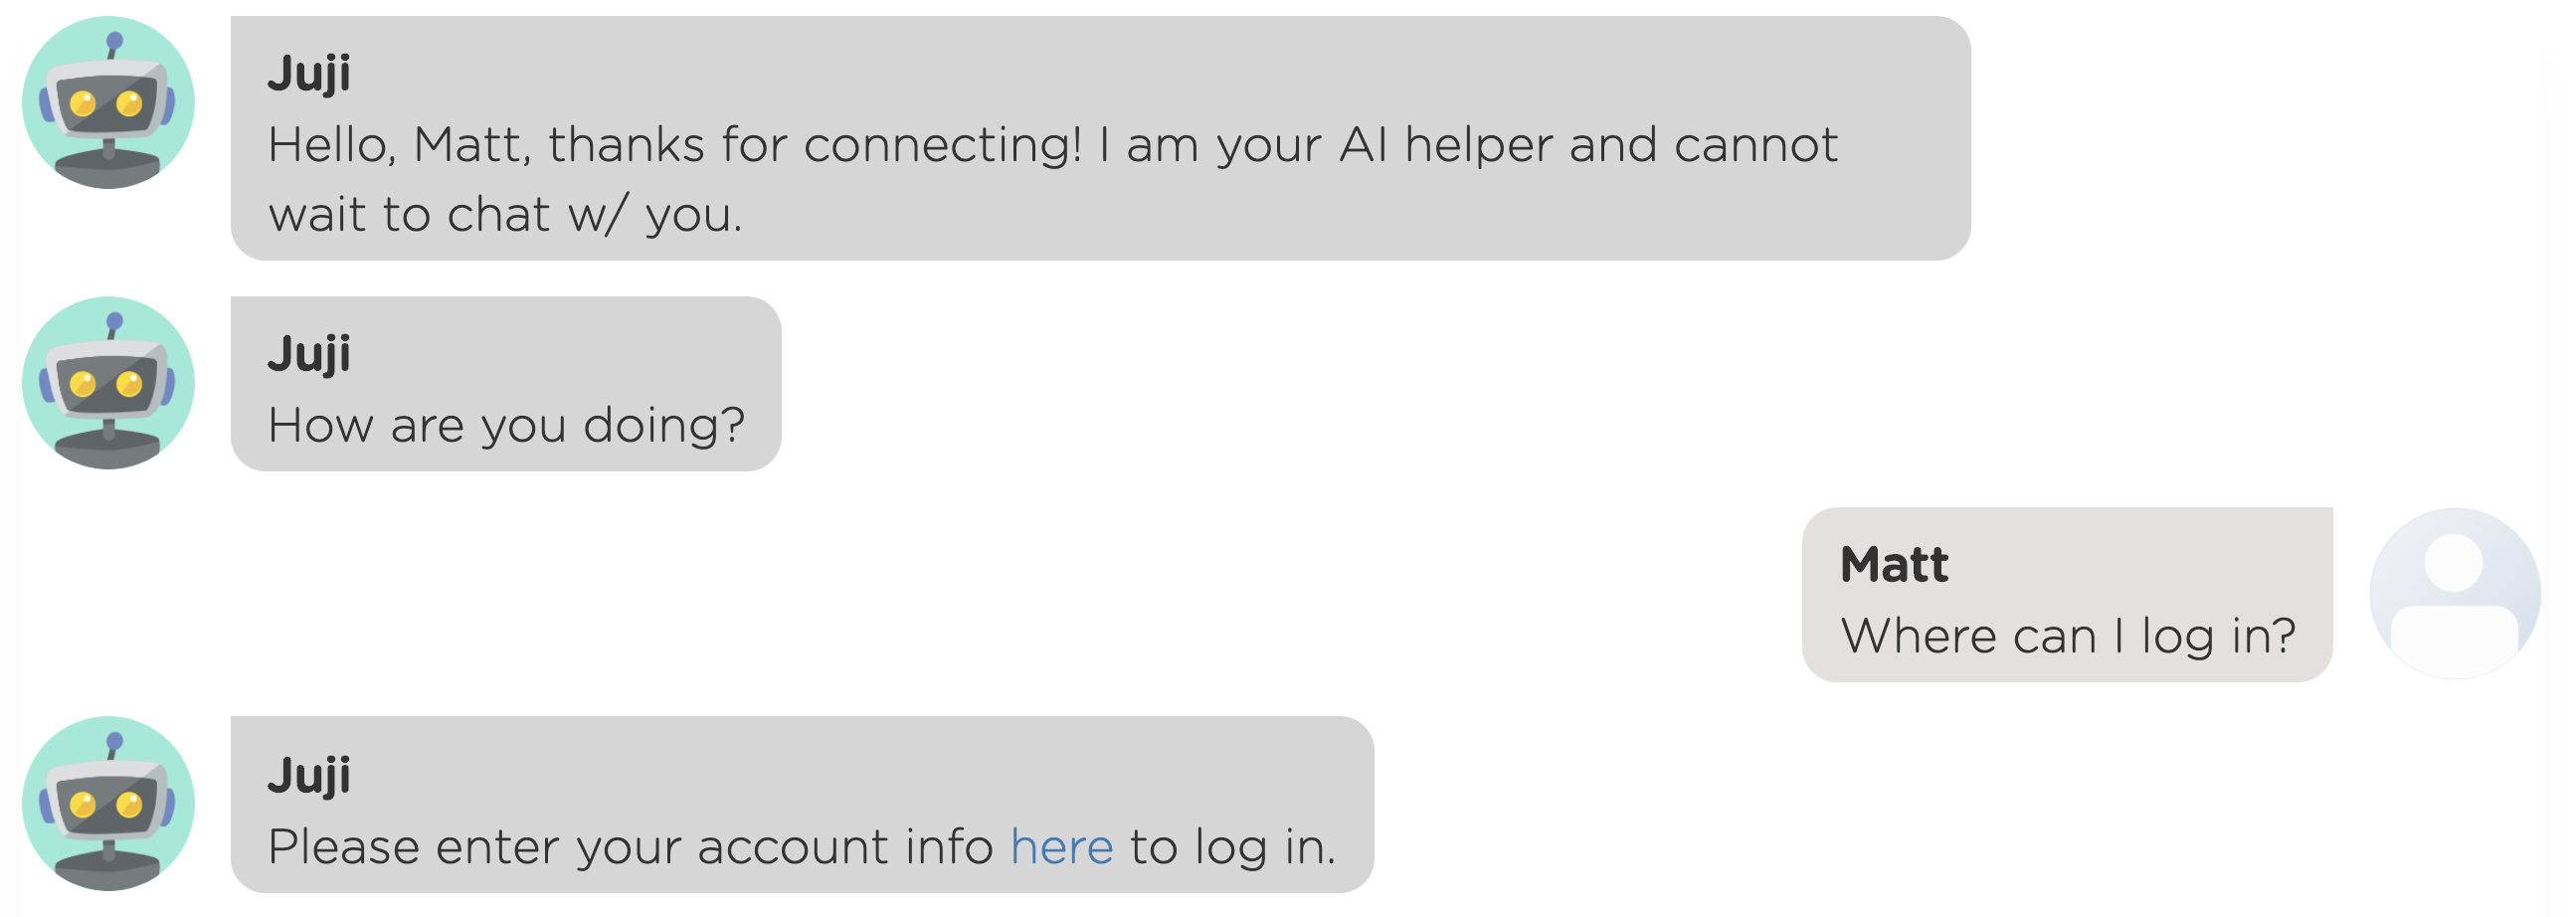 A website chatbot answers a user's free-text question to automate customer service